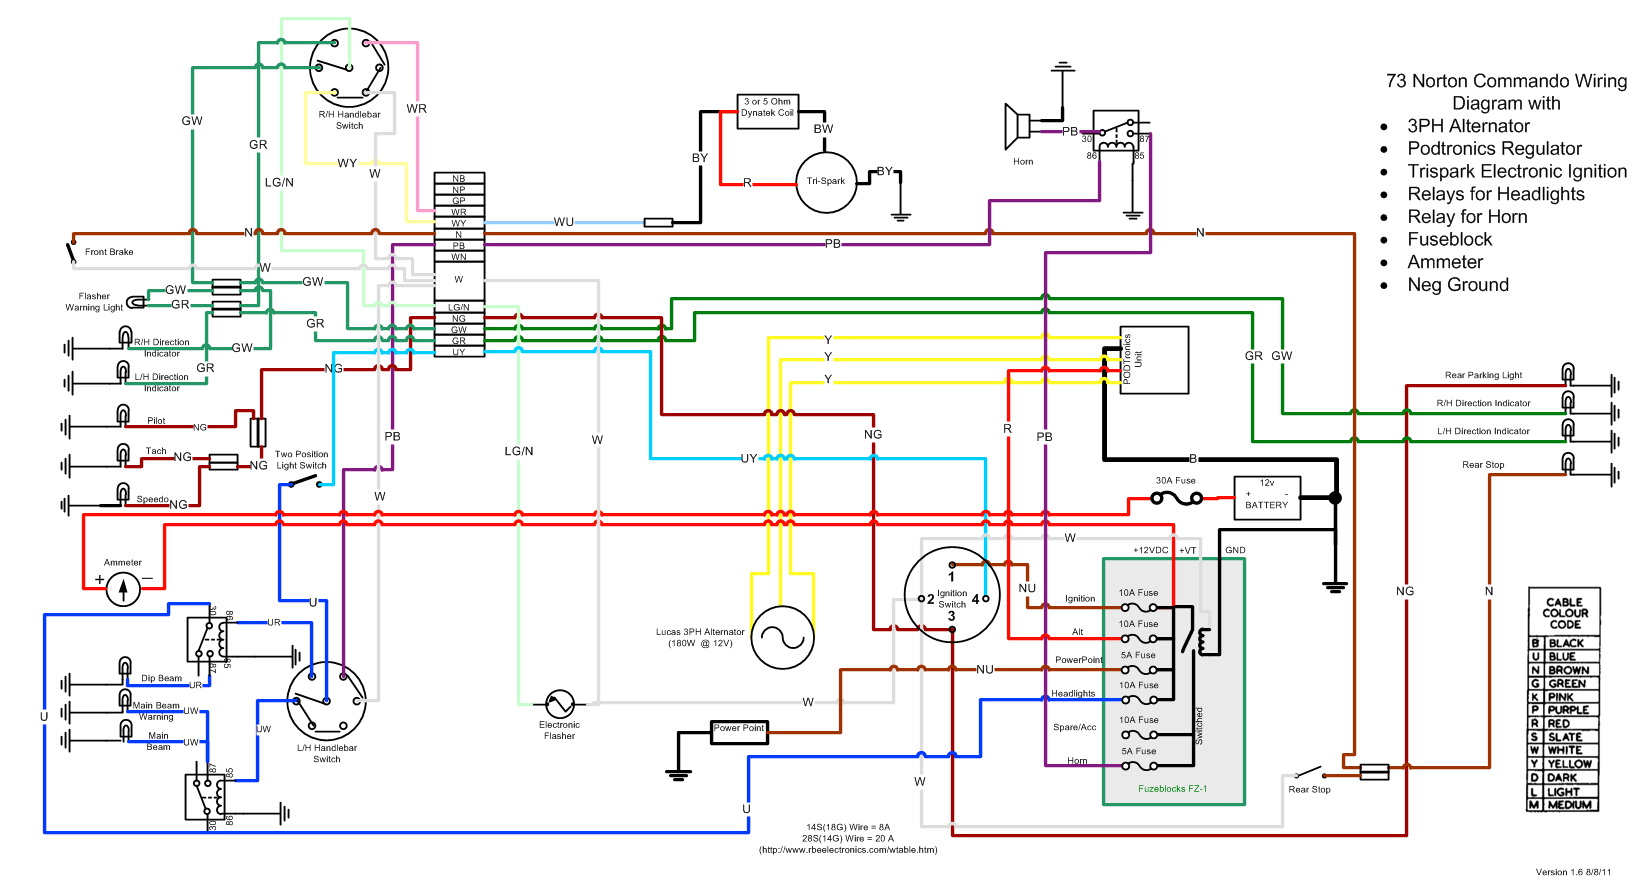 73wiringdiagram?resize\\\\\\\\\\\\\\\\\\\\\\\\\\\\\\\\\\\\\\\=665%2C359 wiring diagram for international dt4300,diagram \u2022 indy500 co  at readyjetset.co